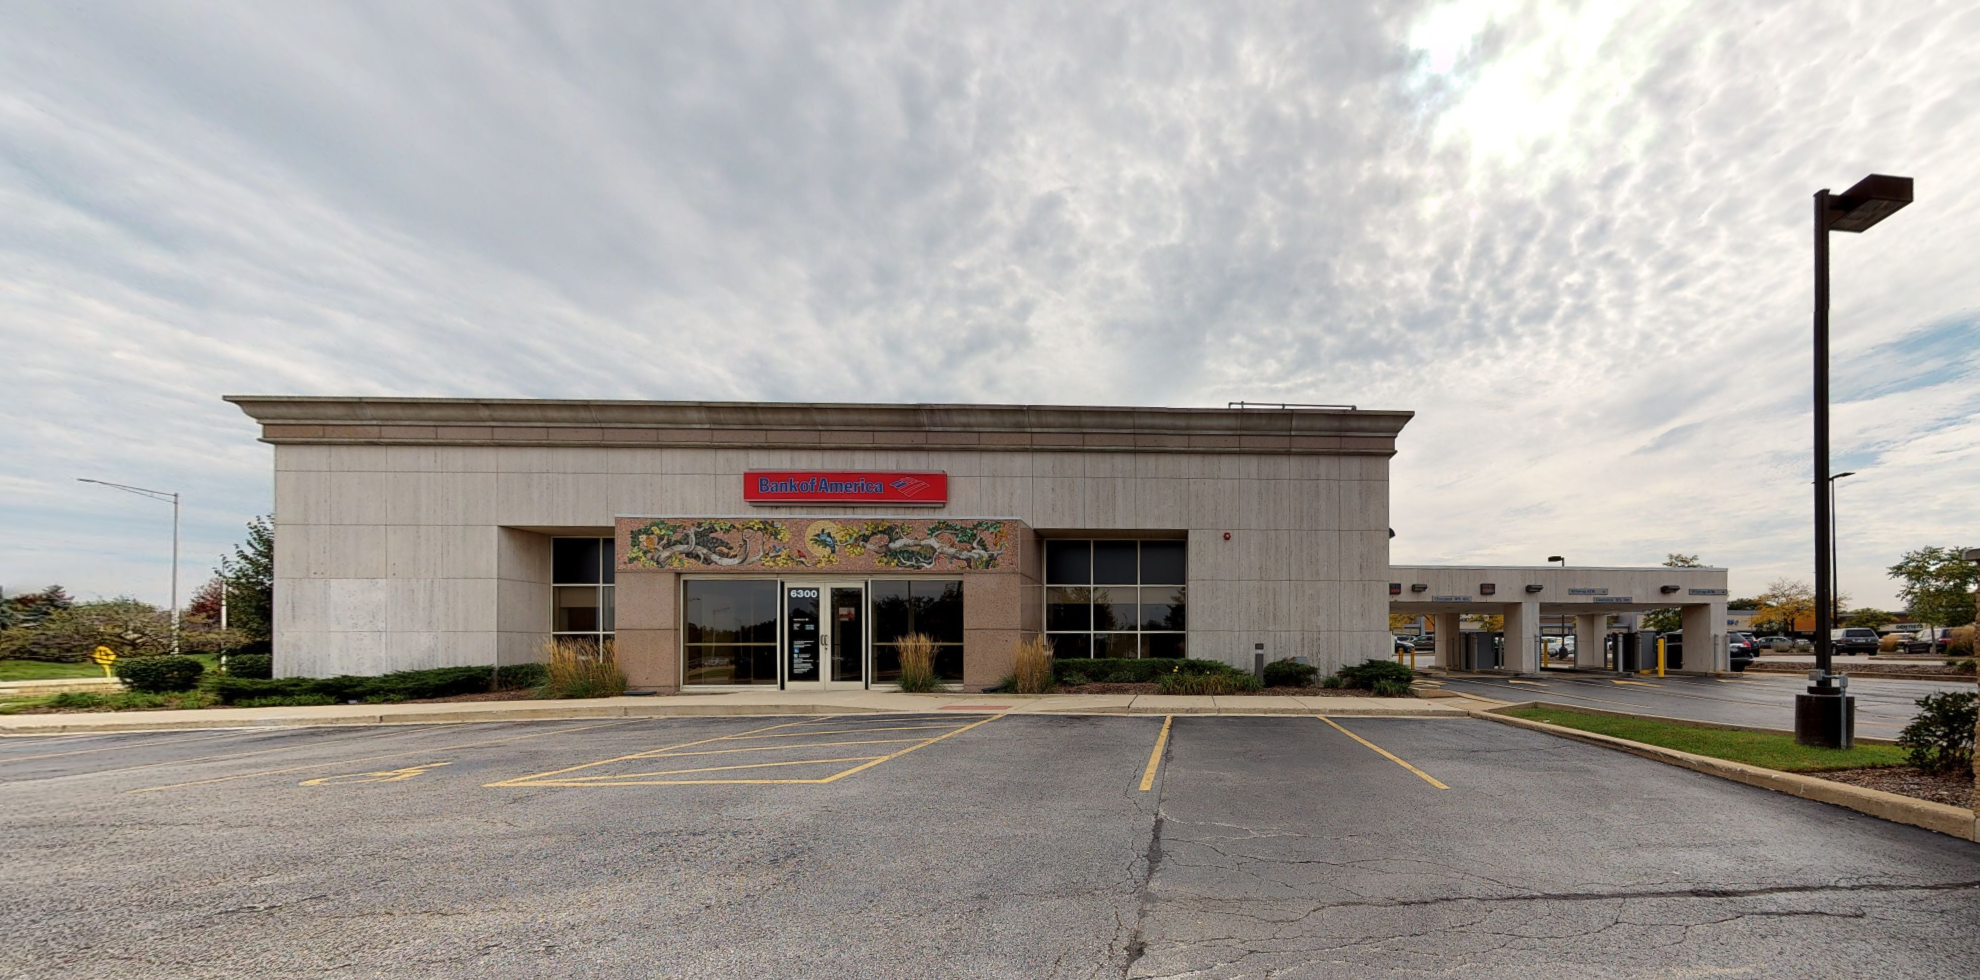 Bank of America financial center with drive-thru ATM   6300 Kingery Hwy STE 500, Willowbrook, IL 60527